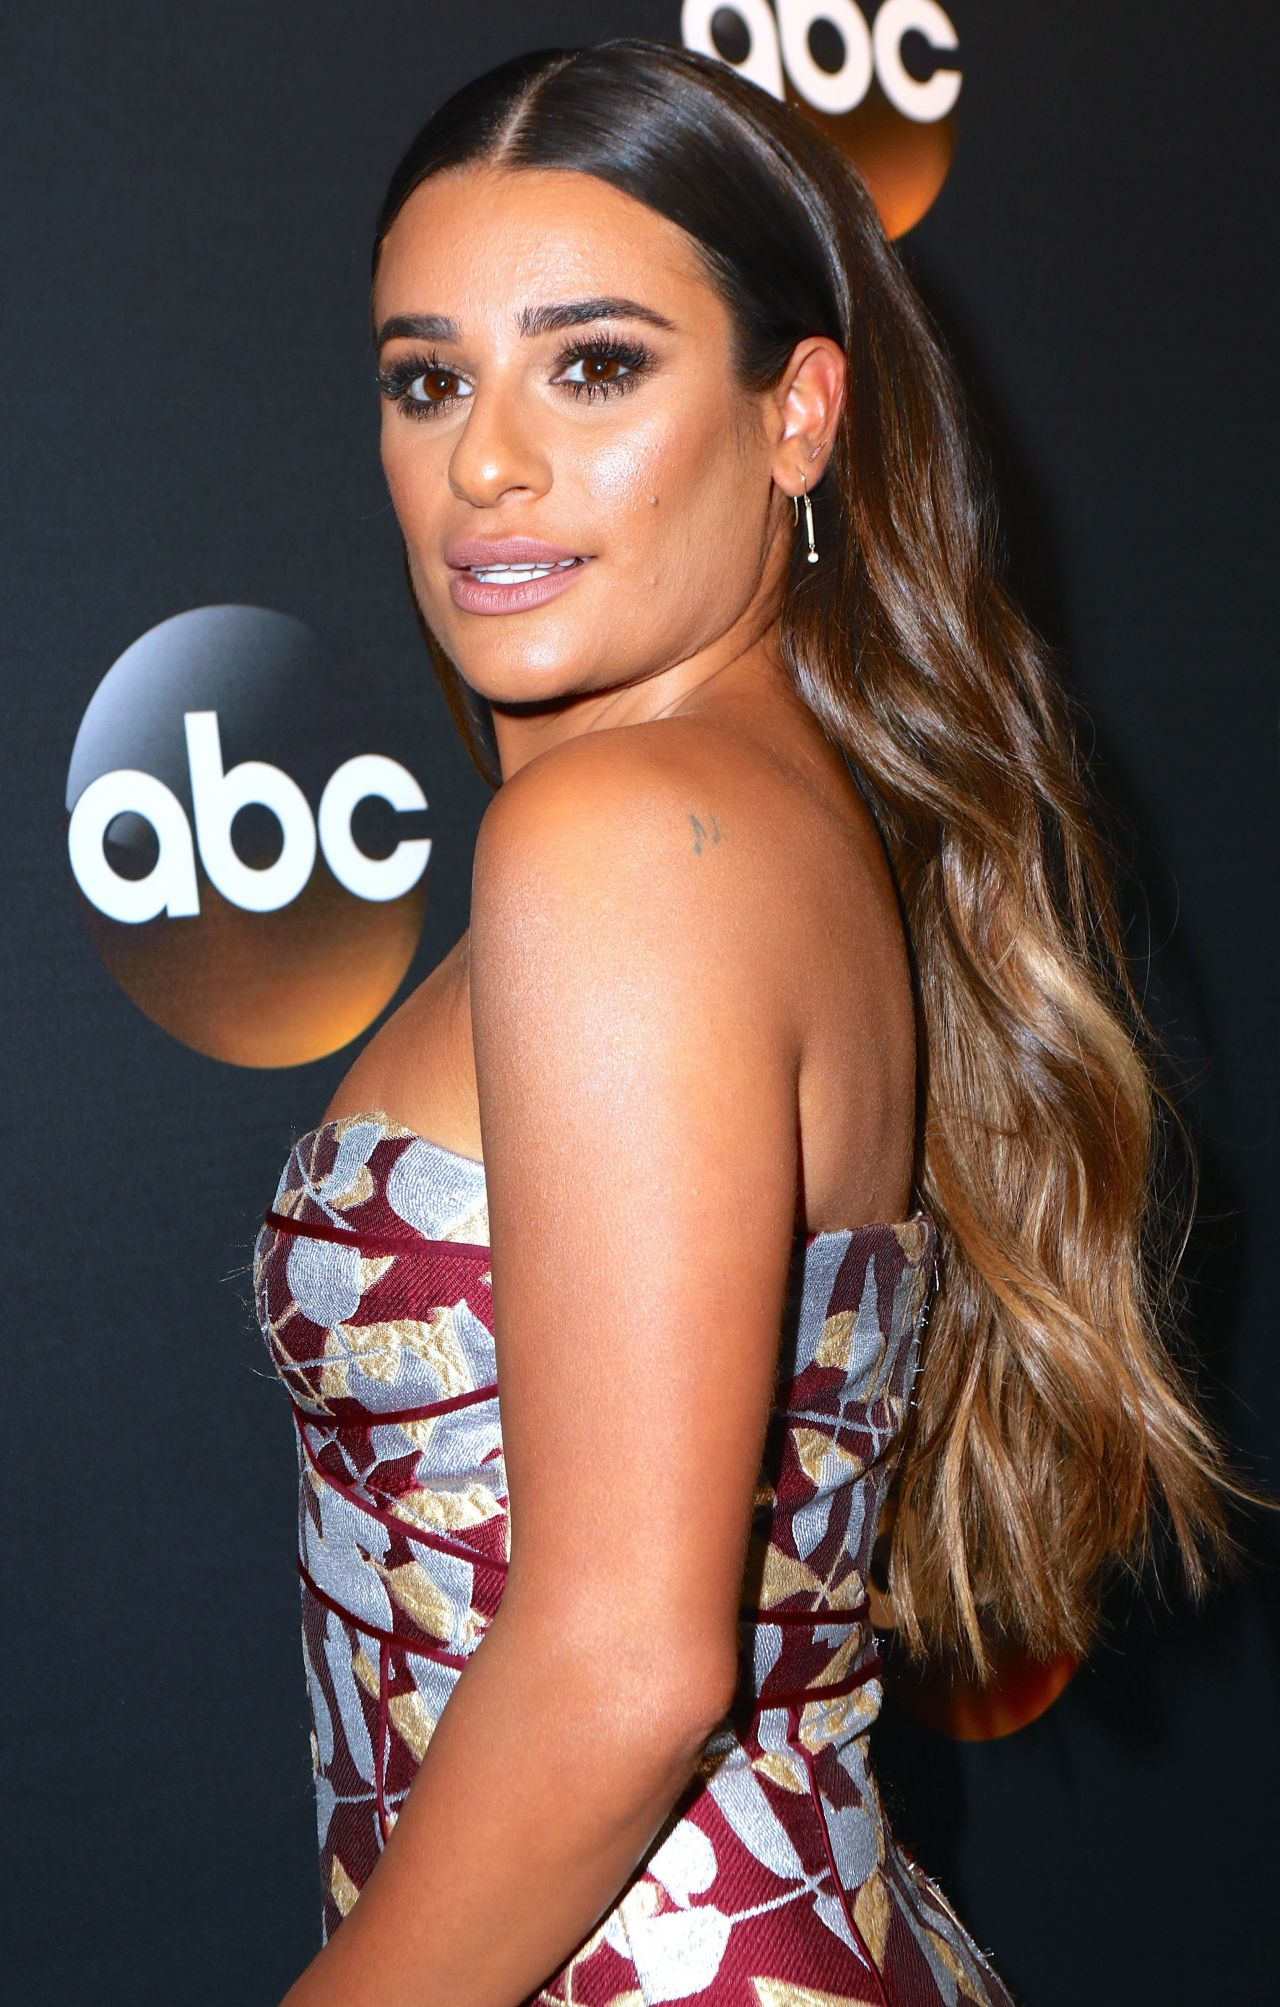 Lea Michele - ABC Upfronts Presentation at the Lincoln Center in New York City 05/16/2017